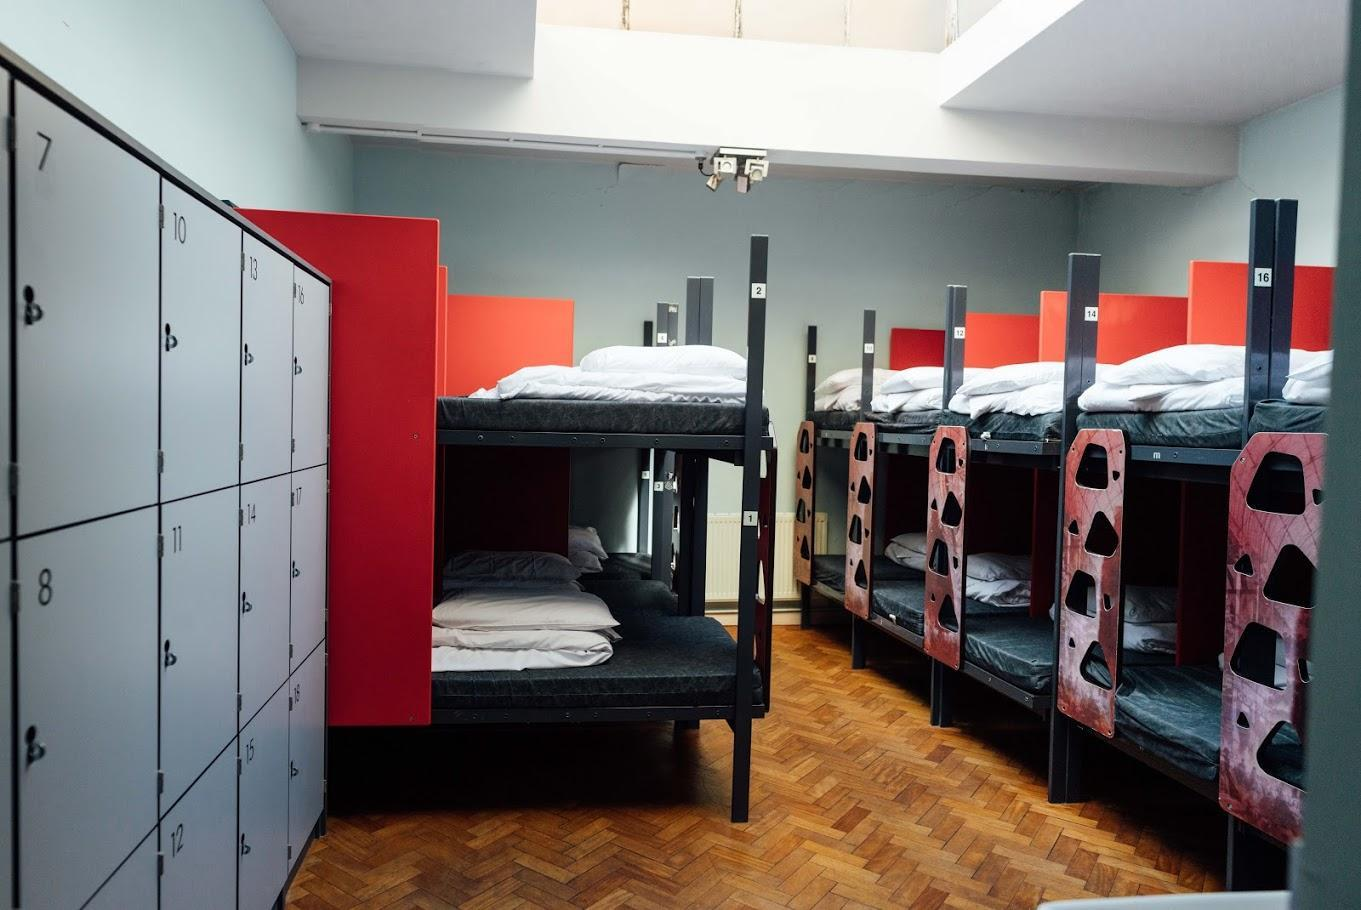 1 Bed in 18-Bed Dormitory